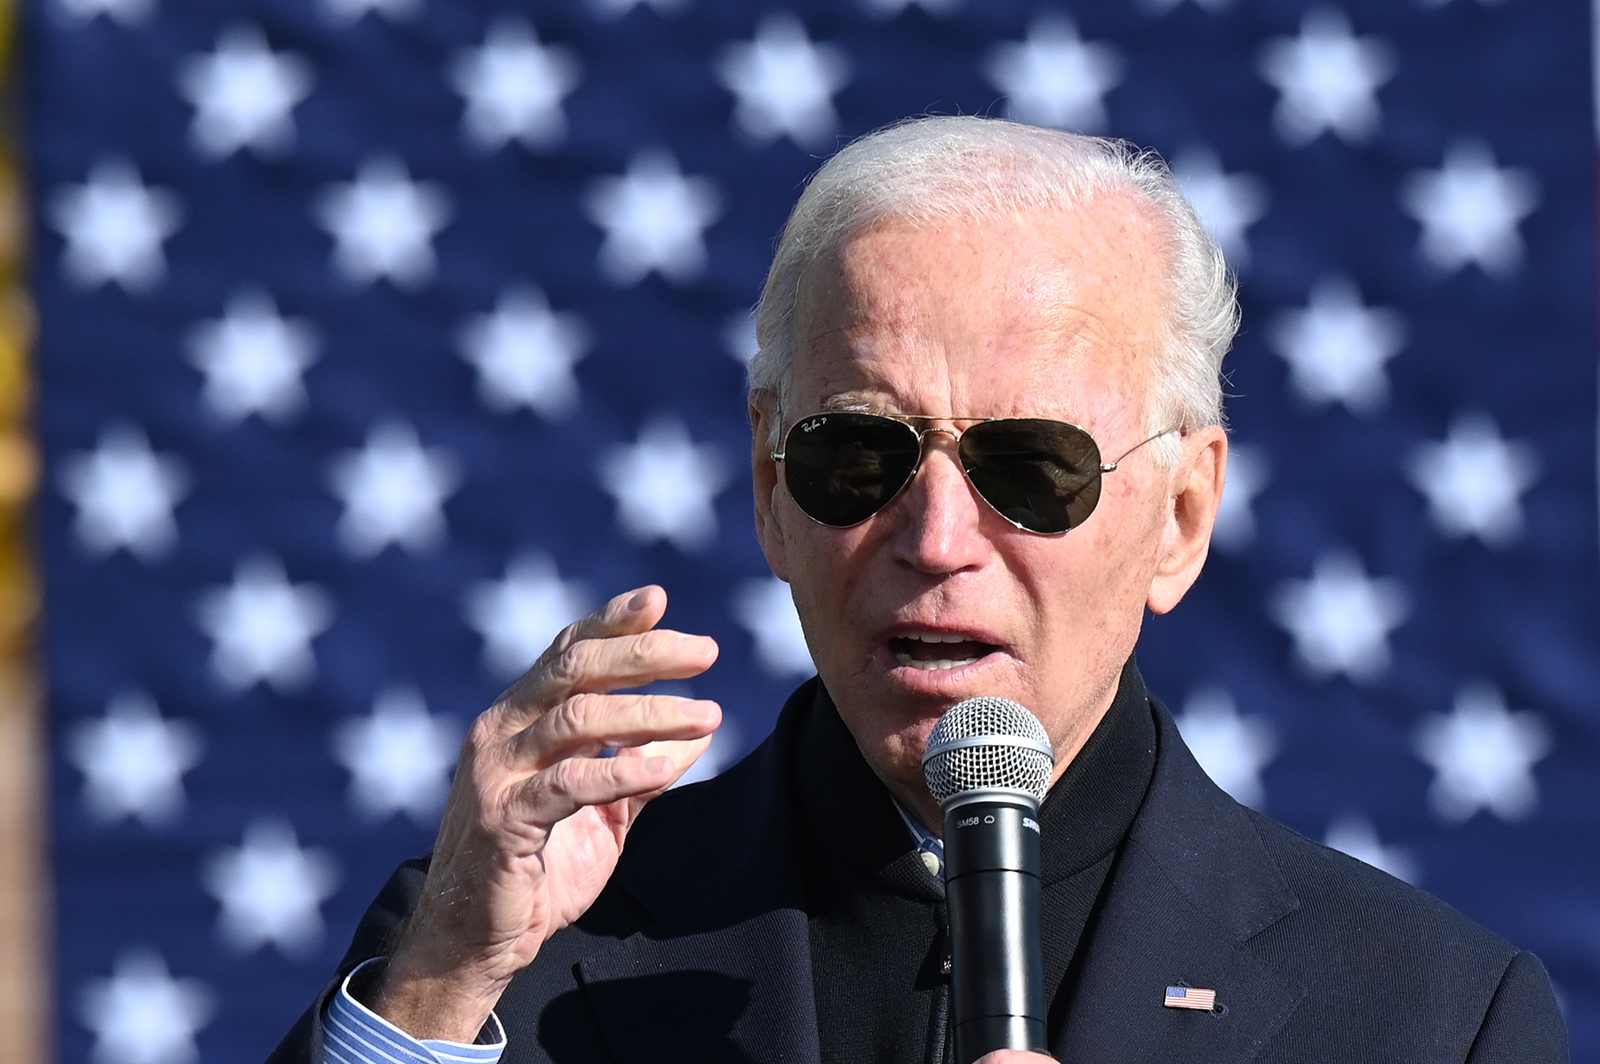 Democratic presidential candidate Joe Biden speaks at a campaign event in Flint, Michigan, on October 31.